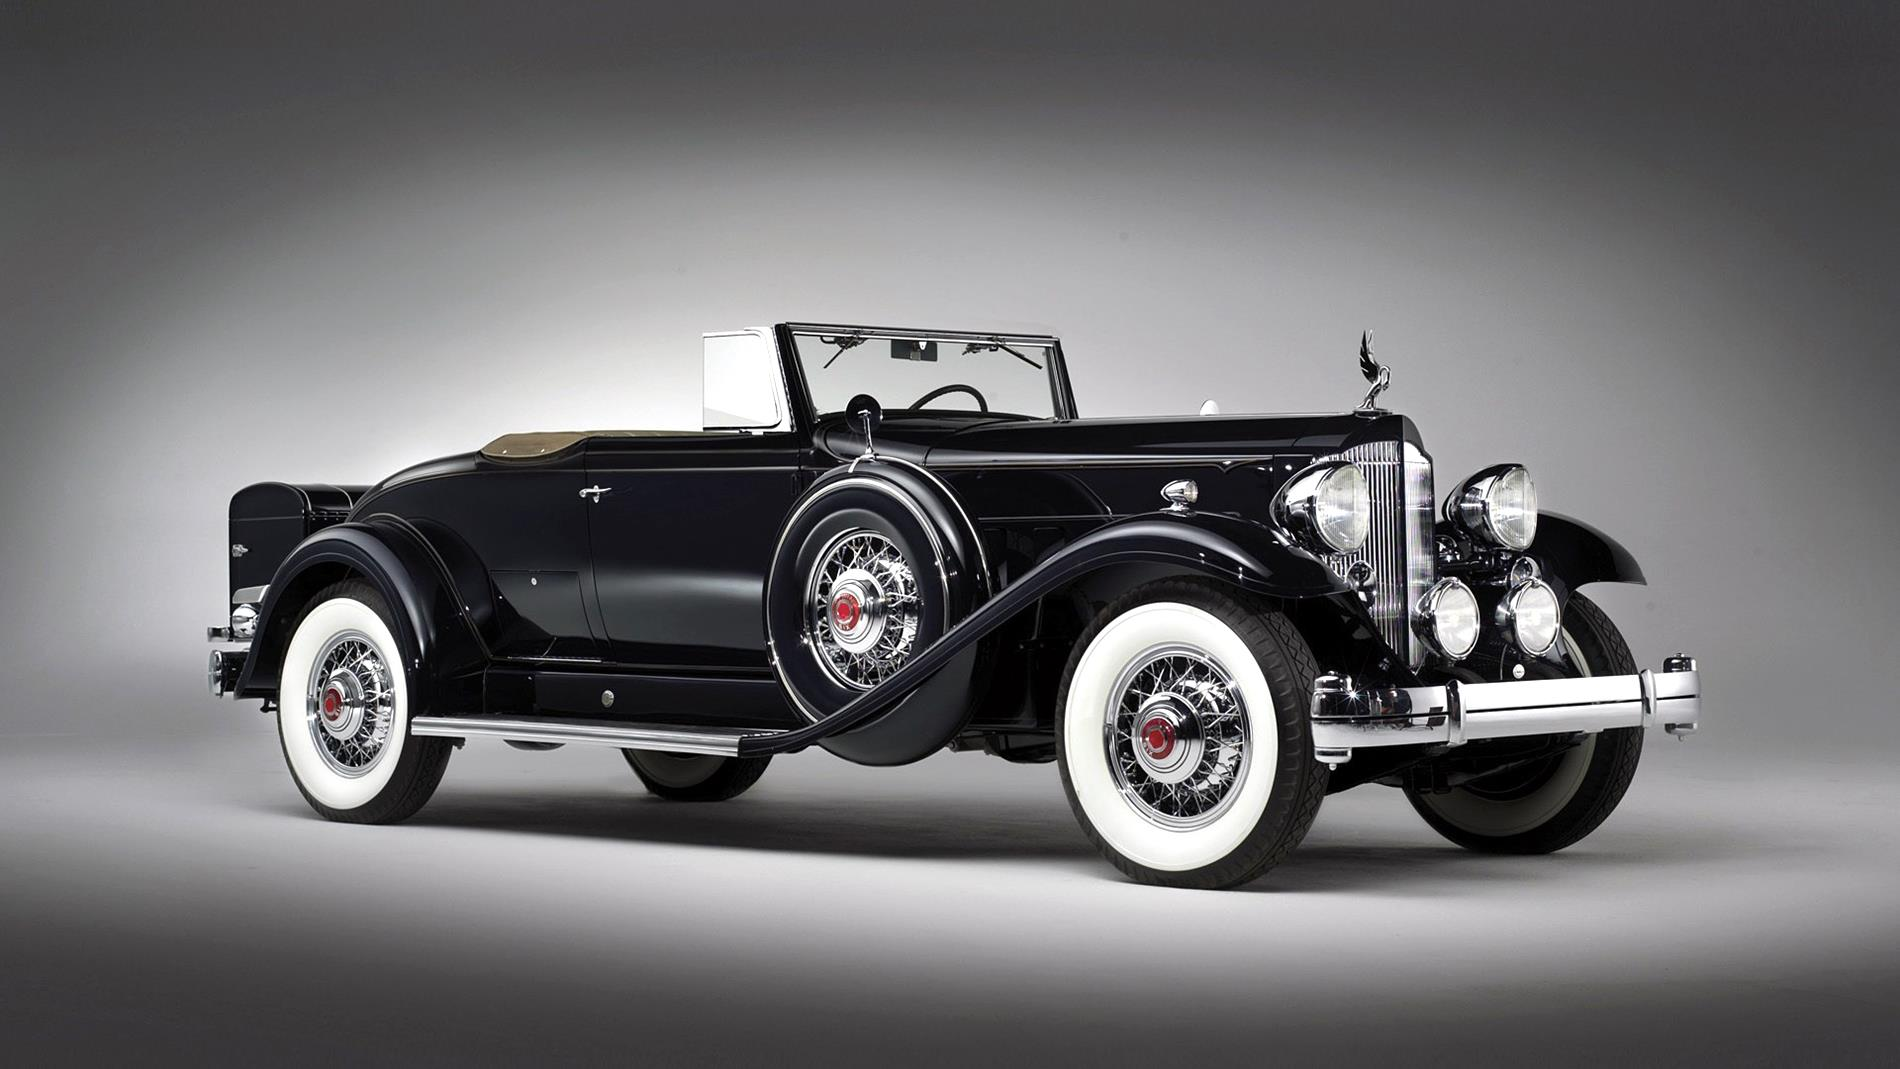 30 The Best Vintage Cars